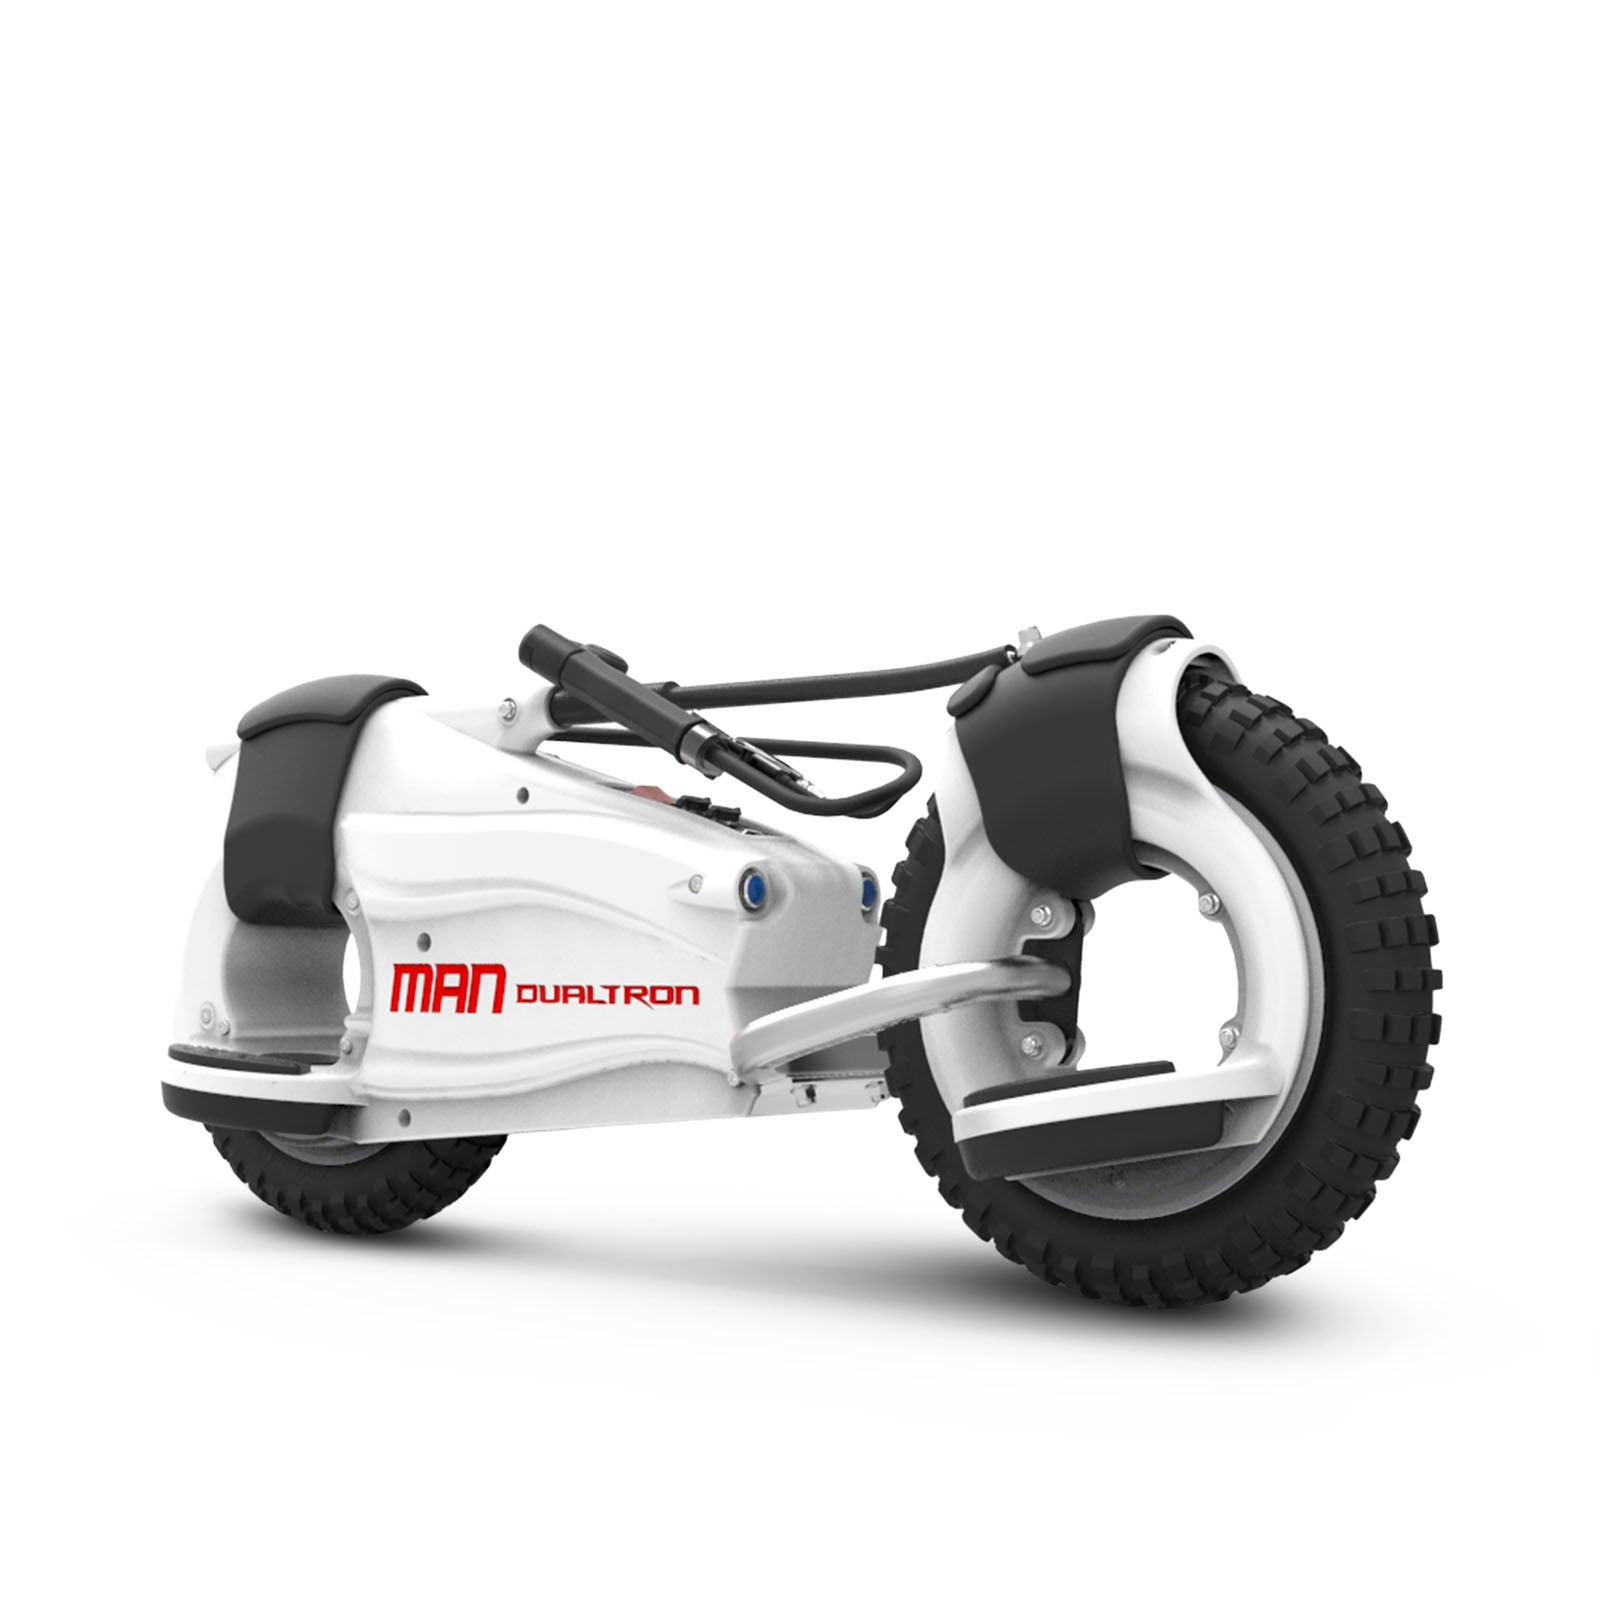 Electric Motor Scooter >> Dualtron Man Ex